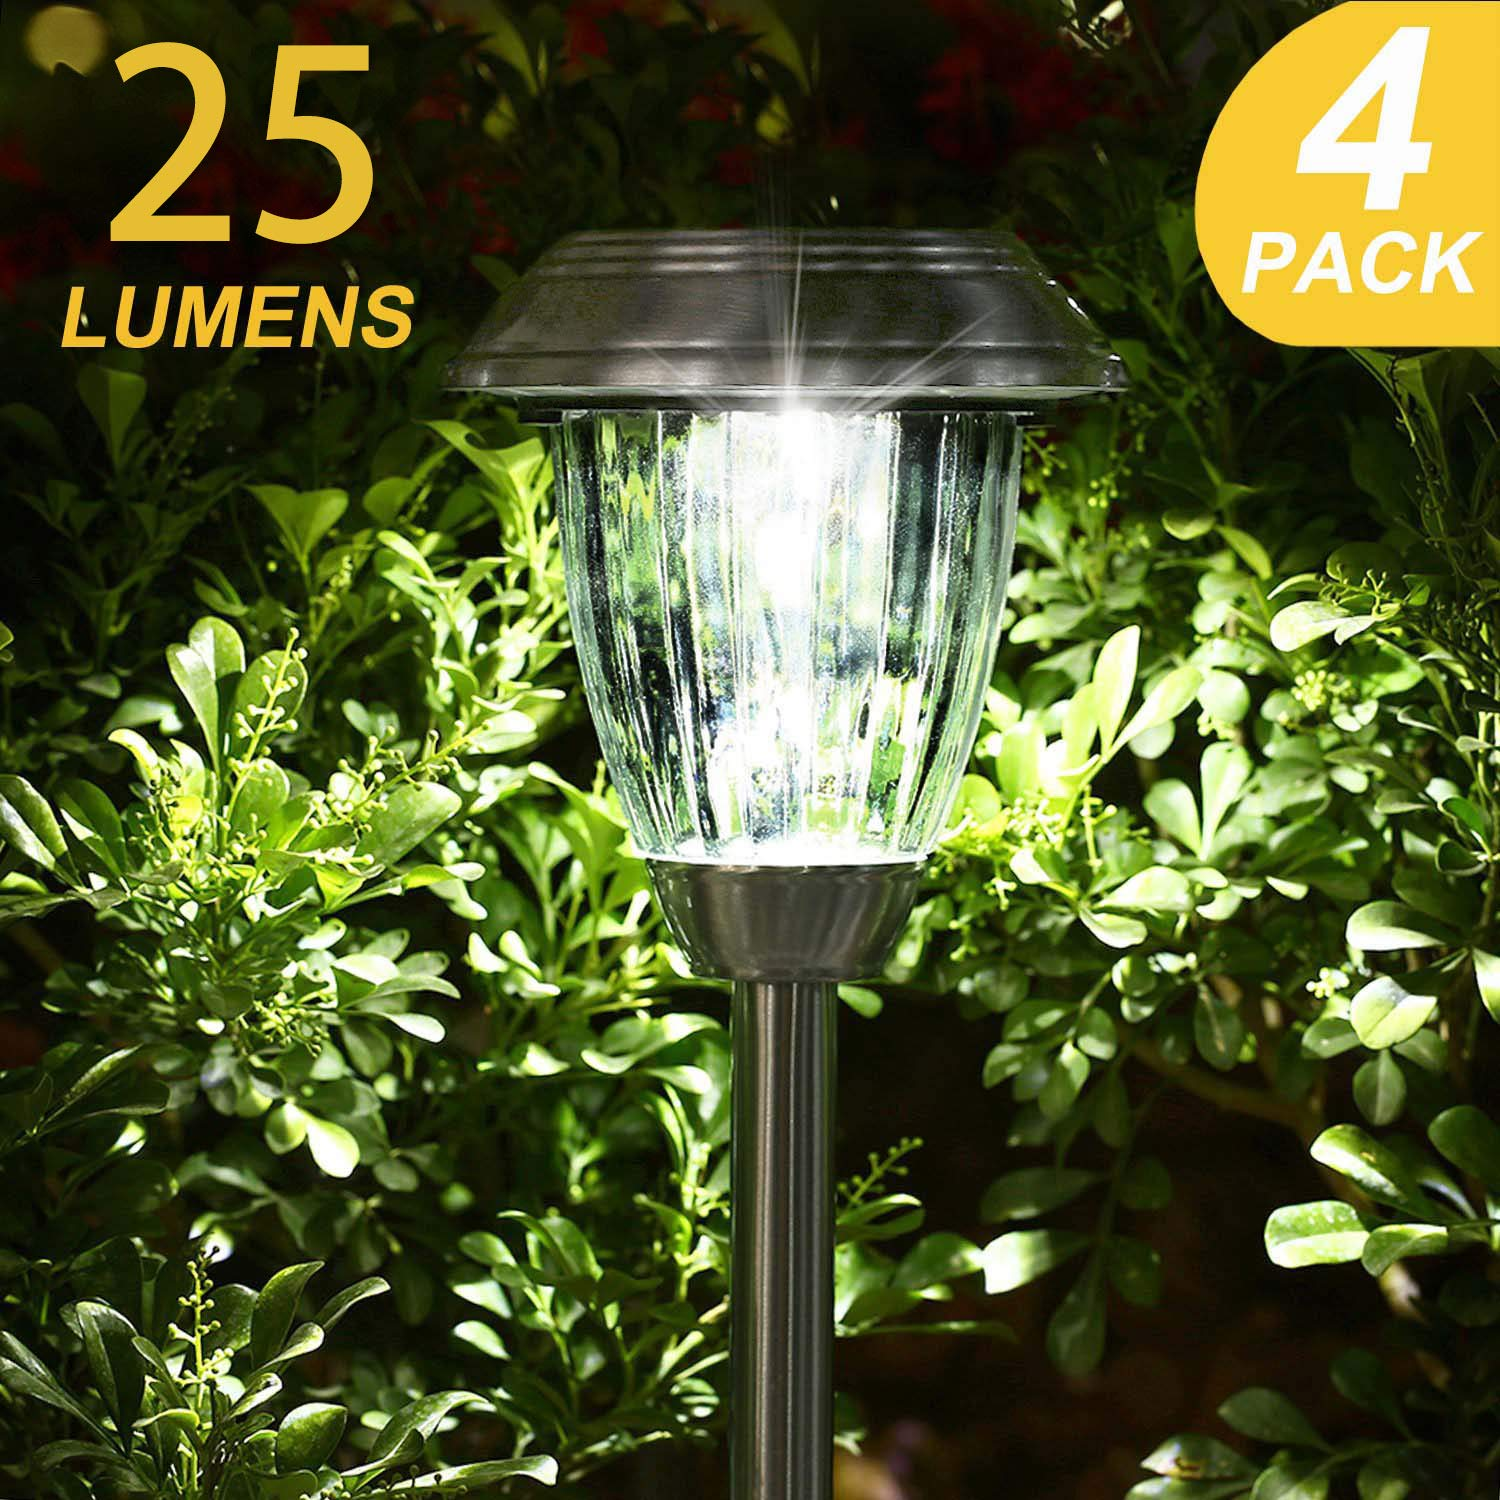 TAKE ME Solar Lights Outdoor,Garden Solar Walkway Path Lights,Super Bright LED Stainless Steel Glass Landscape Lighting for Lawn/Patio/Yard/Driveway by TAKE ME